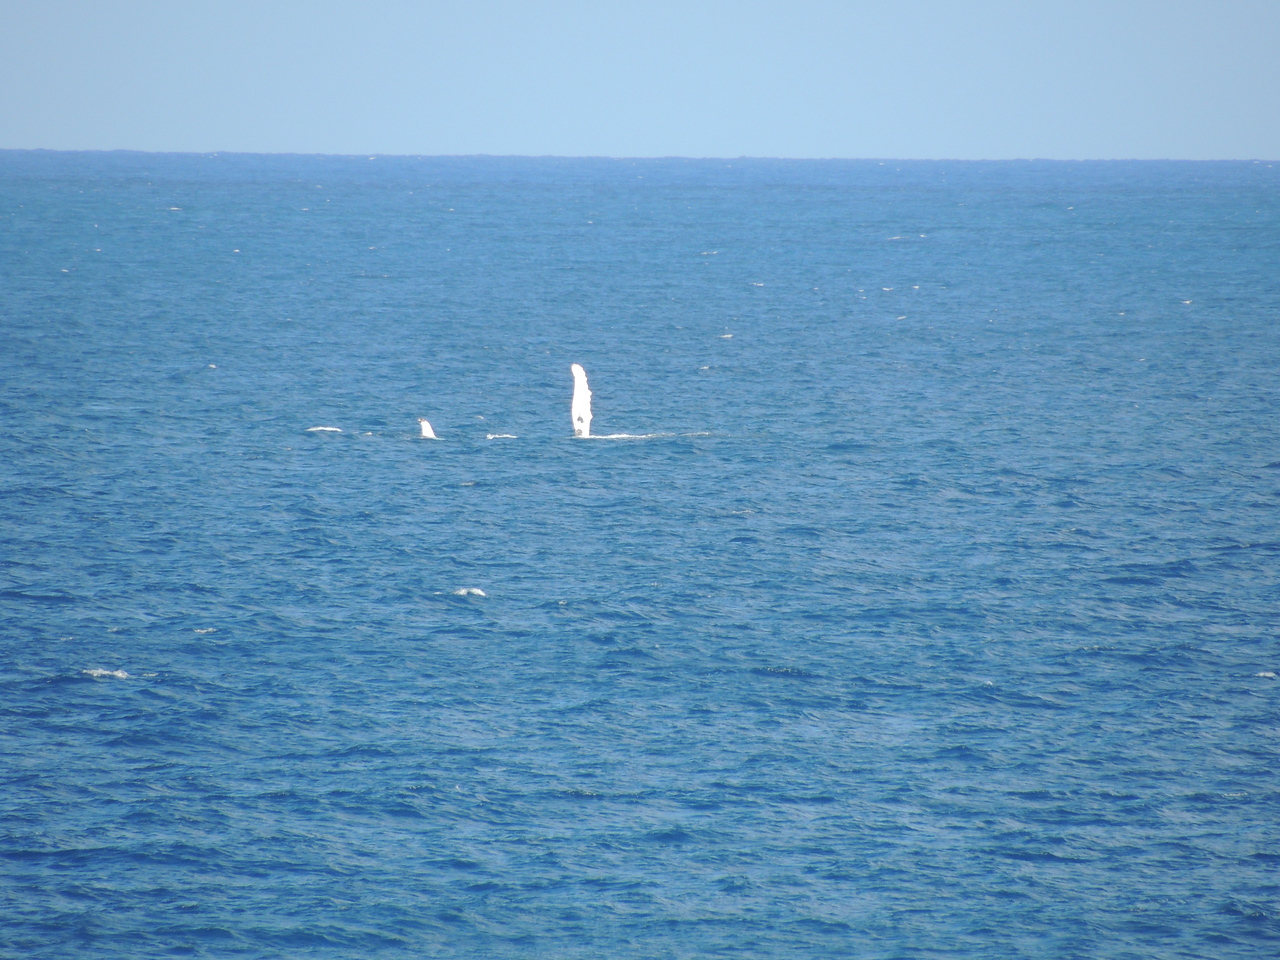 Whale fluke in straights of magellan